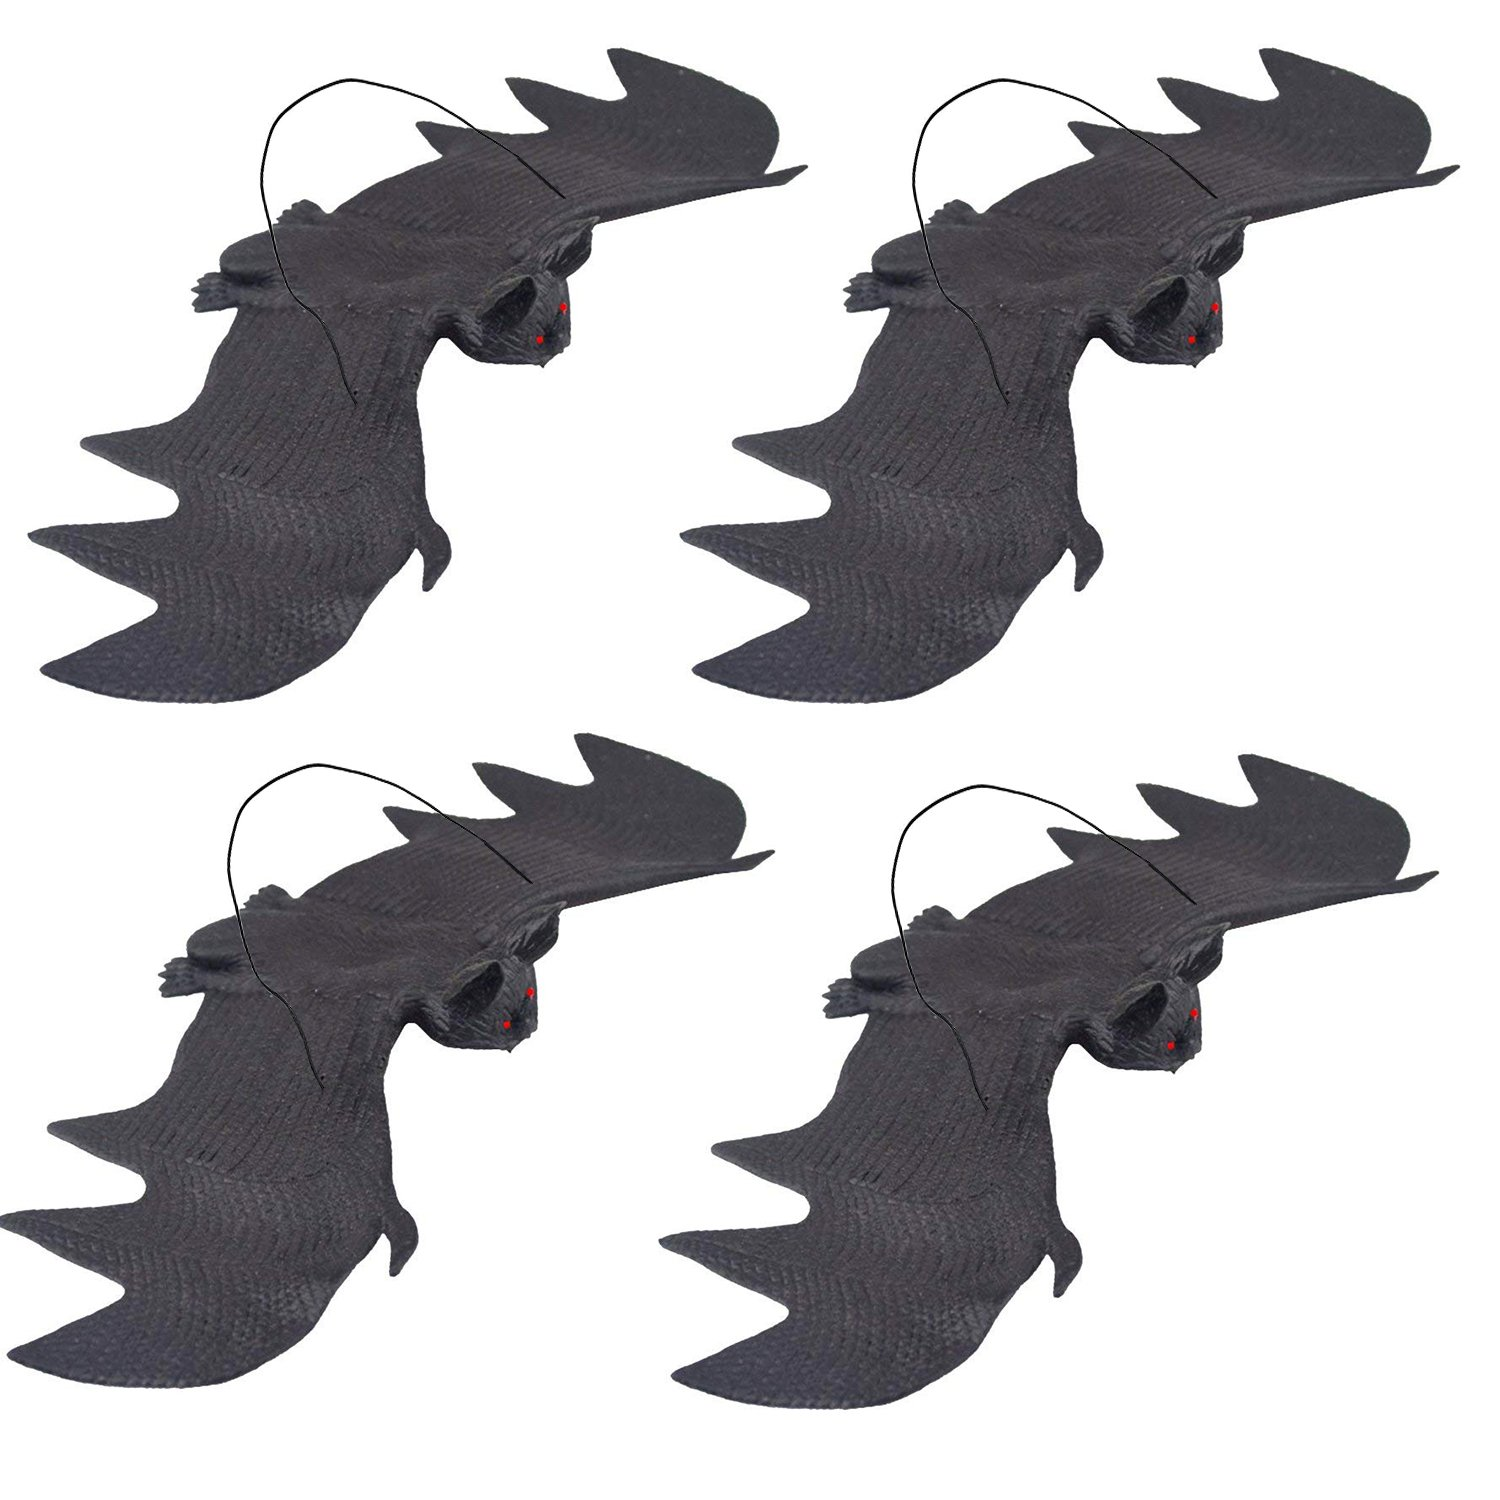 UCLEVER Halloween Hanging Bats Large Size Realistic Spooky Bat for Outdoors and Indoors Decoration, 4 Pack